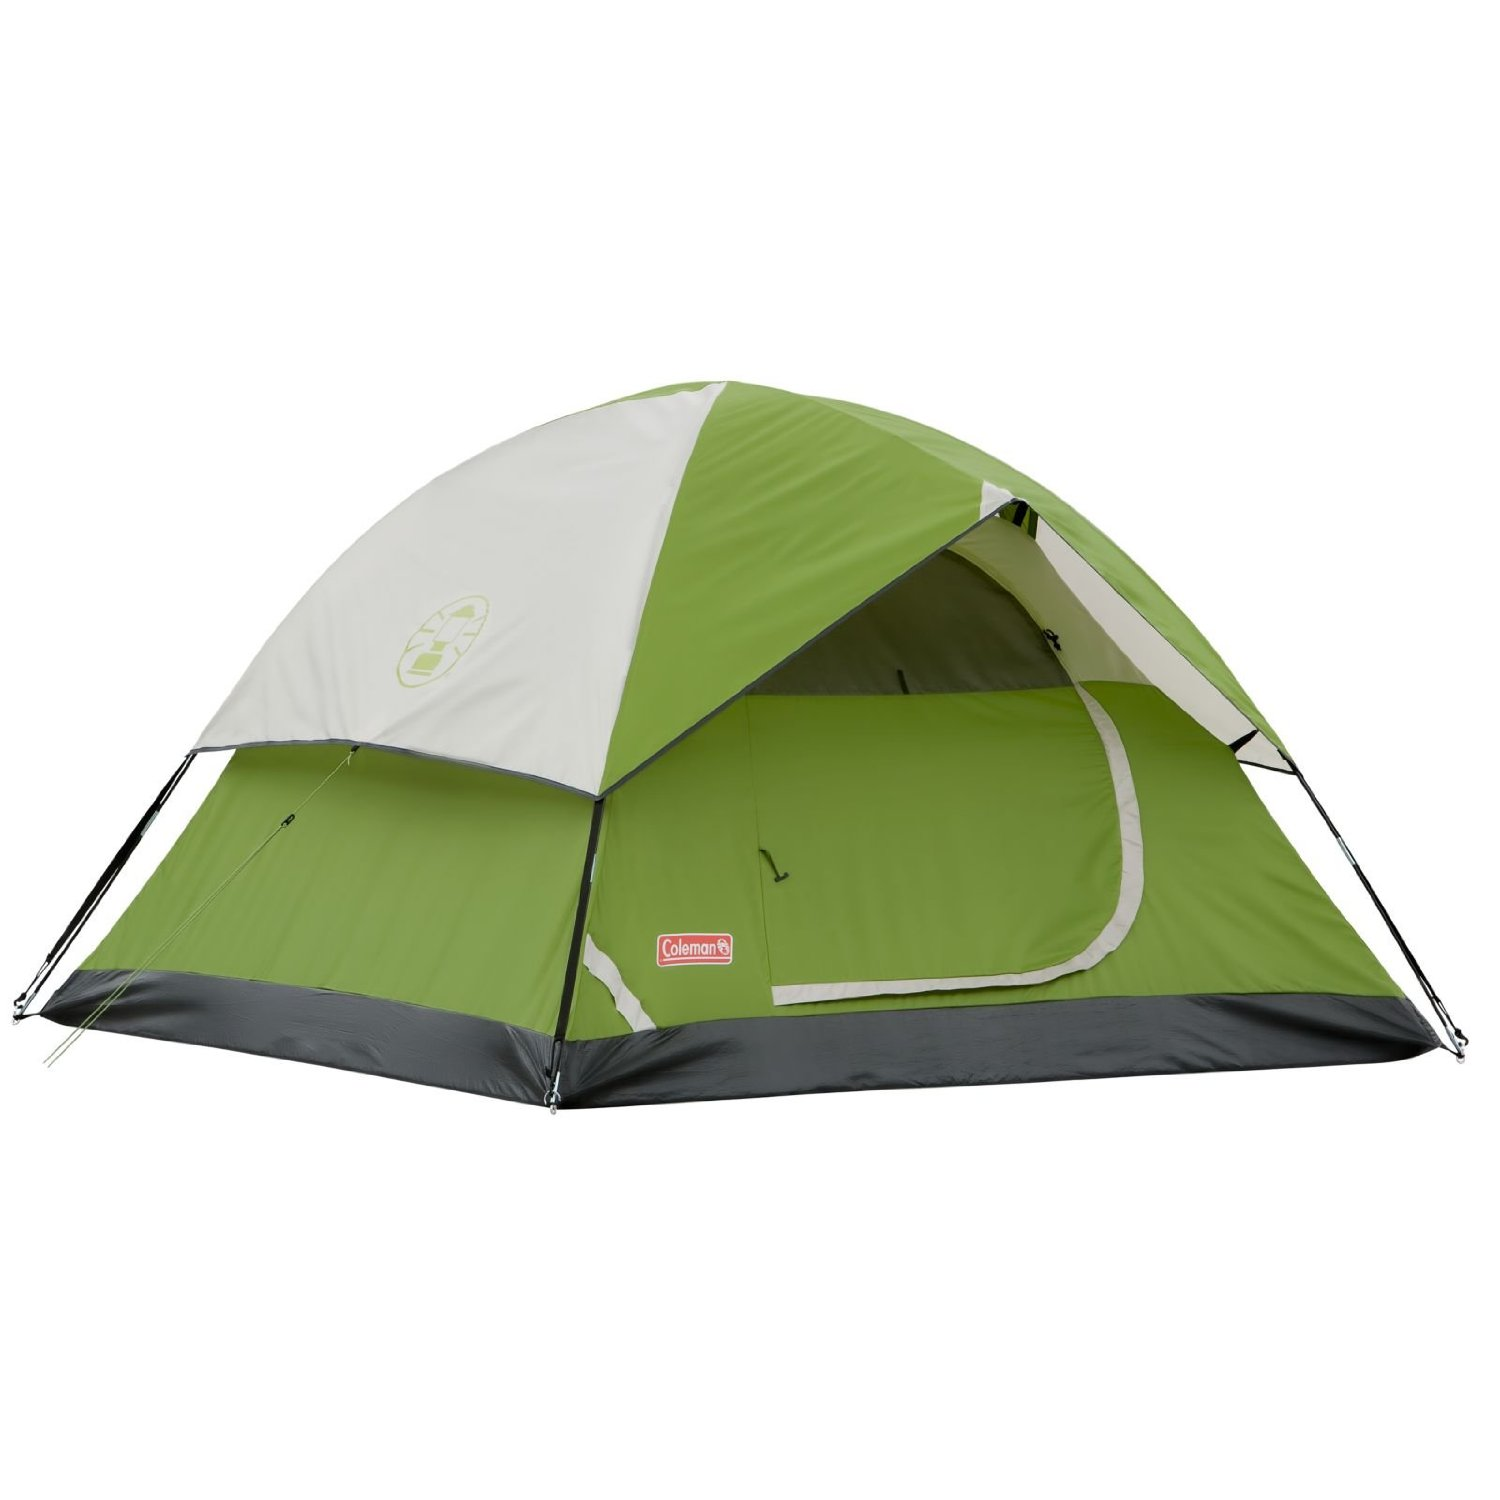 Coleman Sundome 6 Person 10 x 10 Feet 2-Pole C&ing Tent Green |  sc 1 st  Walmart & Coleman Sundome 6 Person 10 x 10 Feet 2-Pole Camping Tent Green ...